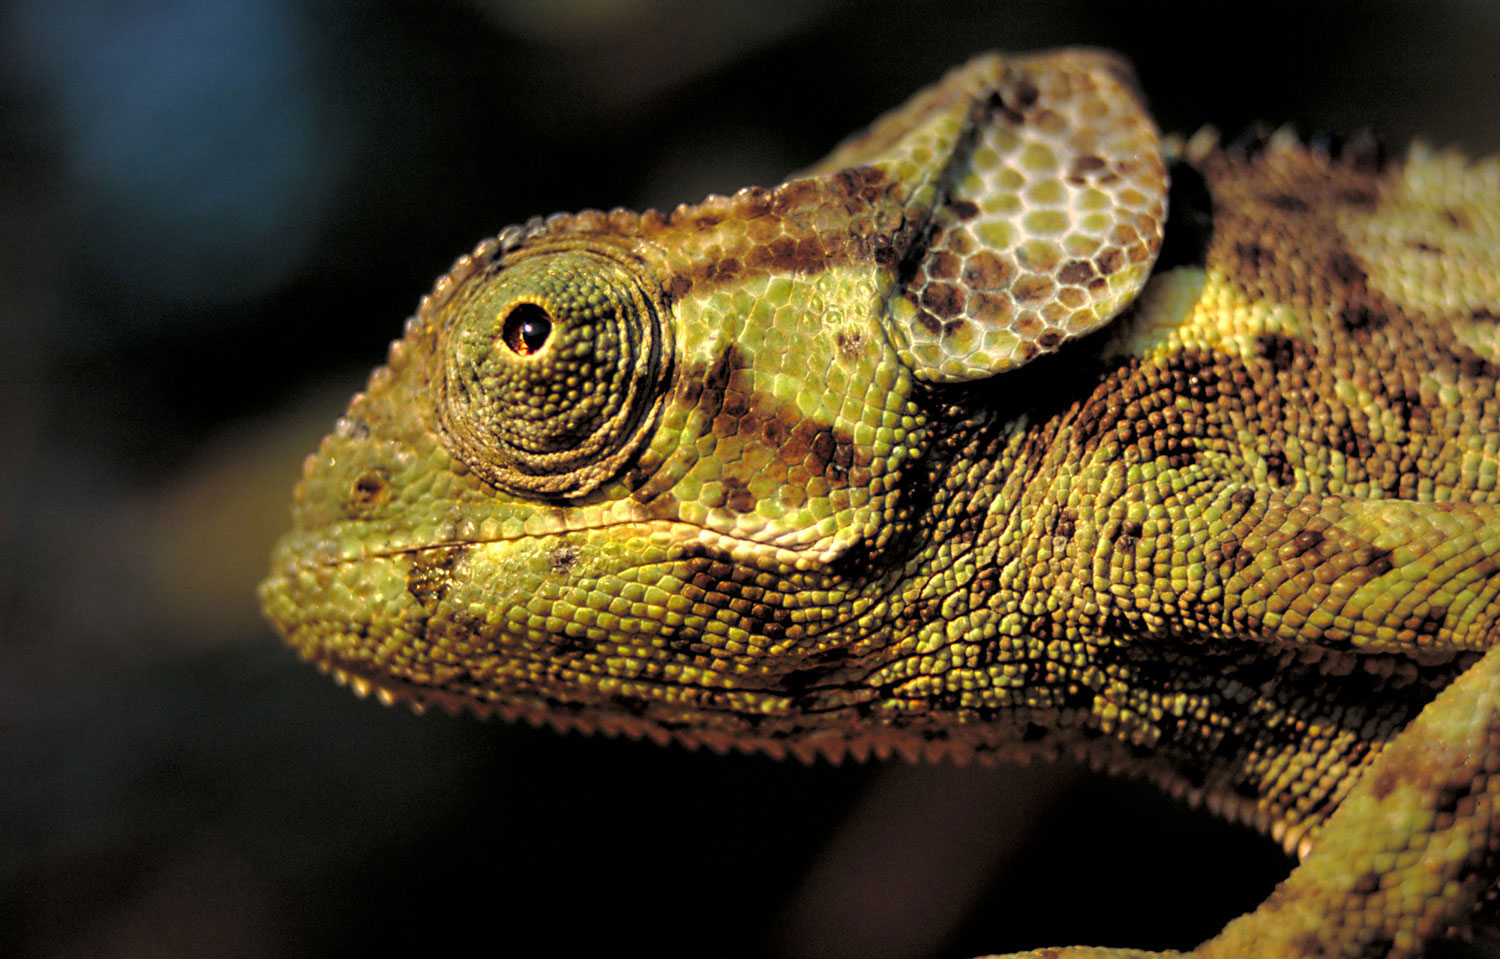 Reptiles of the Luangwa Valley